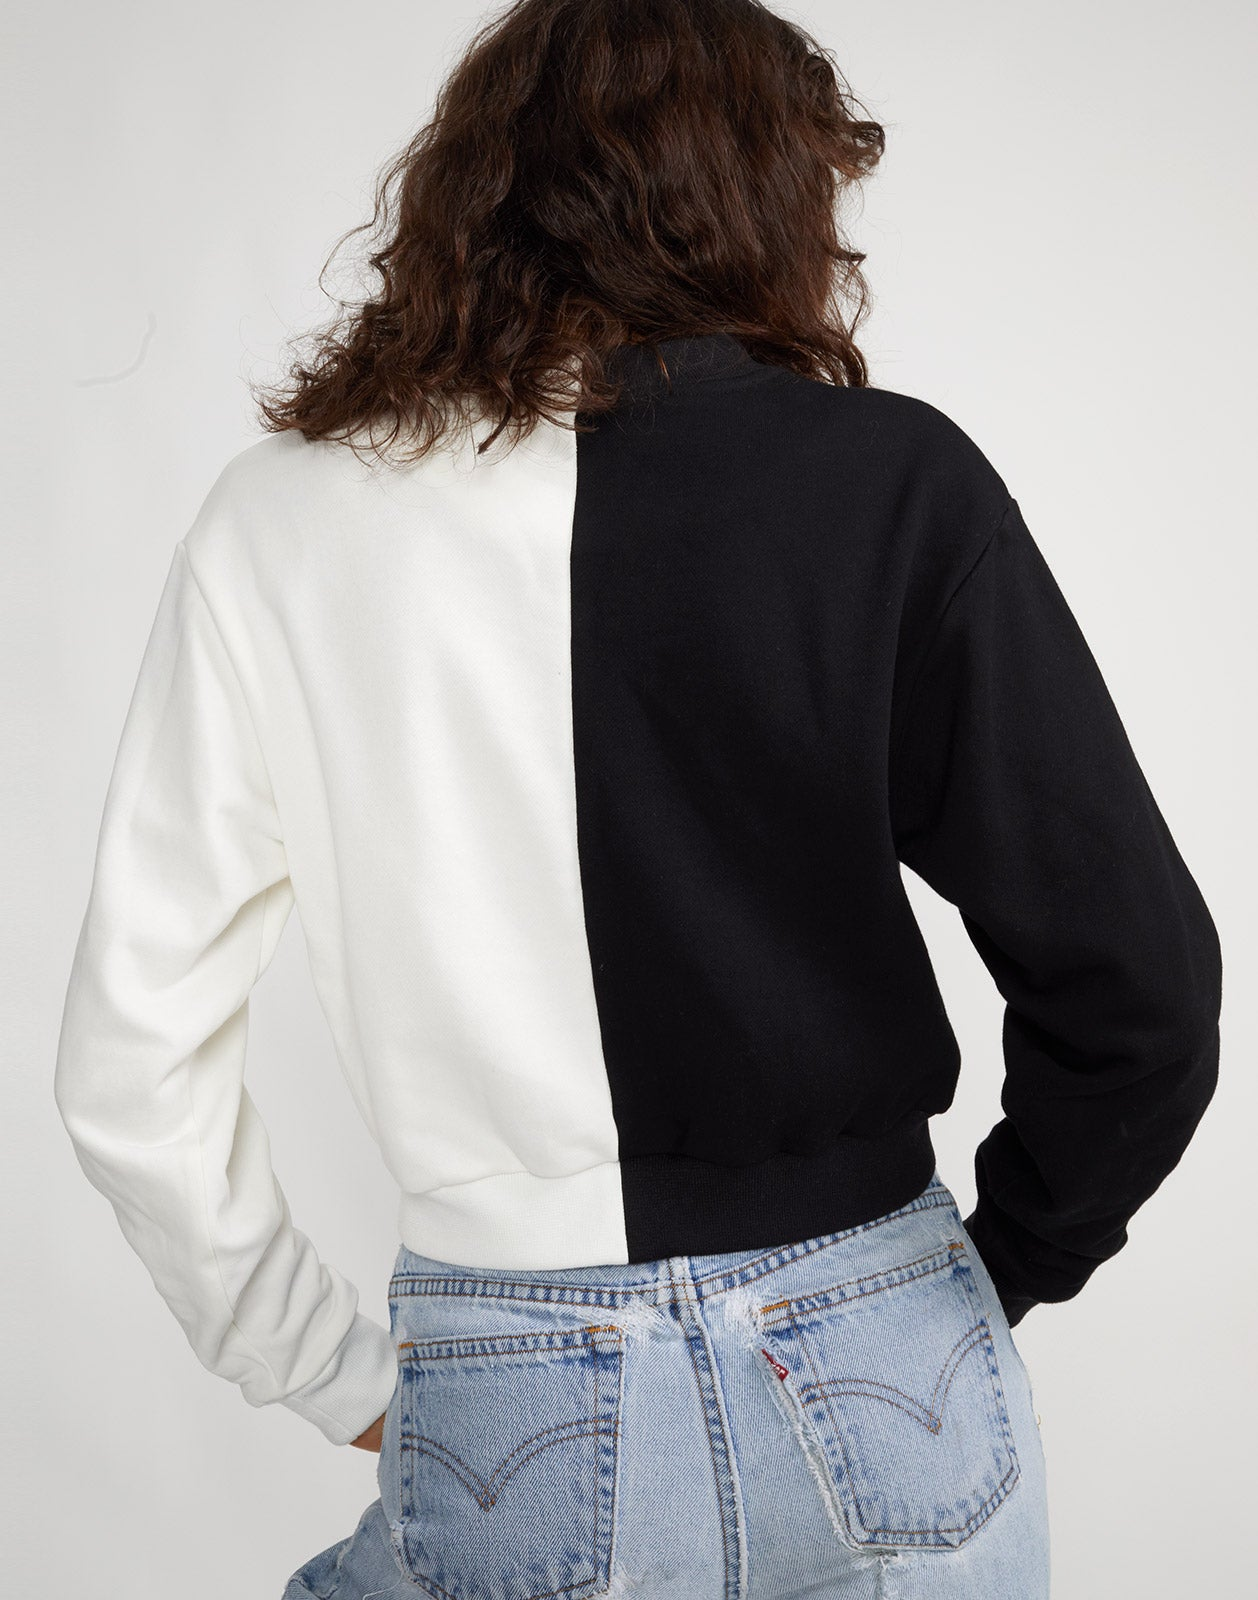 Back view of the CaliYork sweatshirt in half black, half white with hot pink lettering.